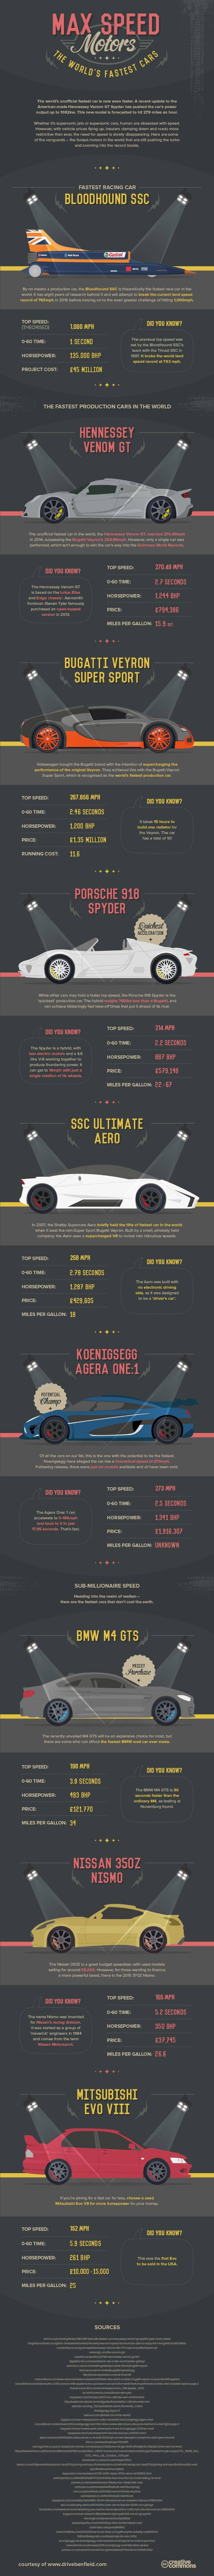 worlds-fastest-cars